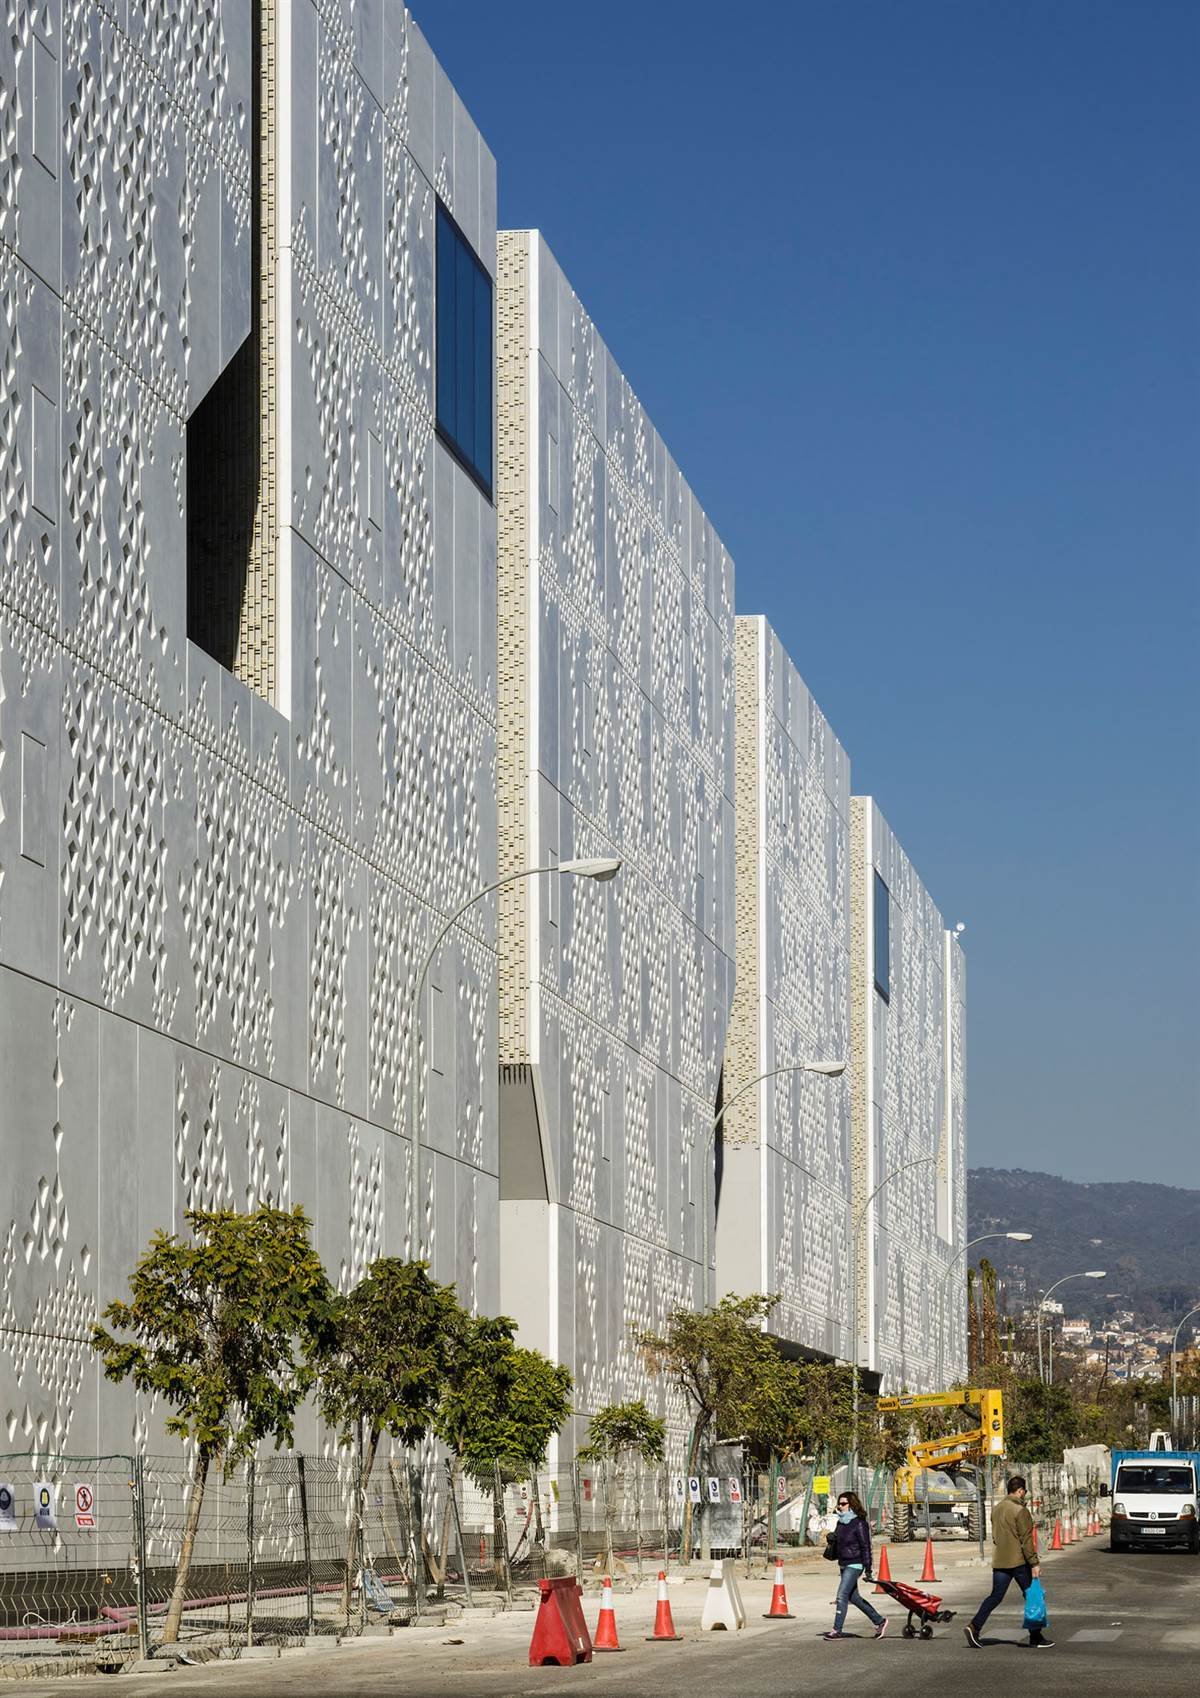 Public Facilities Tag Archdaily # Andre Kevin Muebles Cordoba